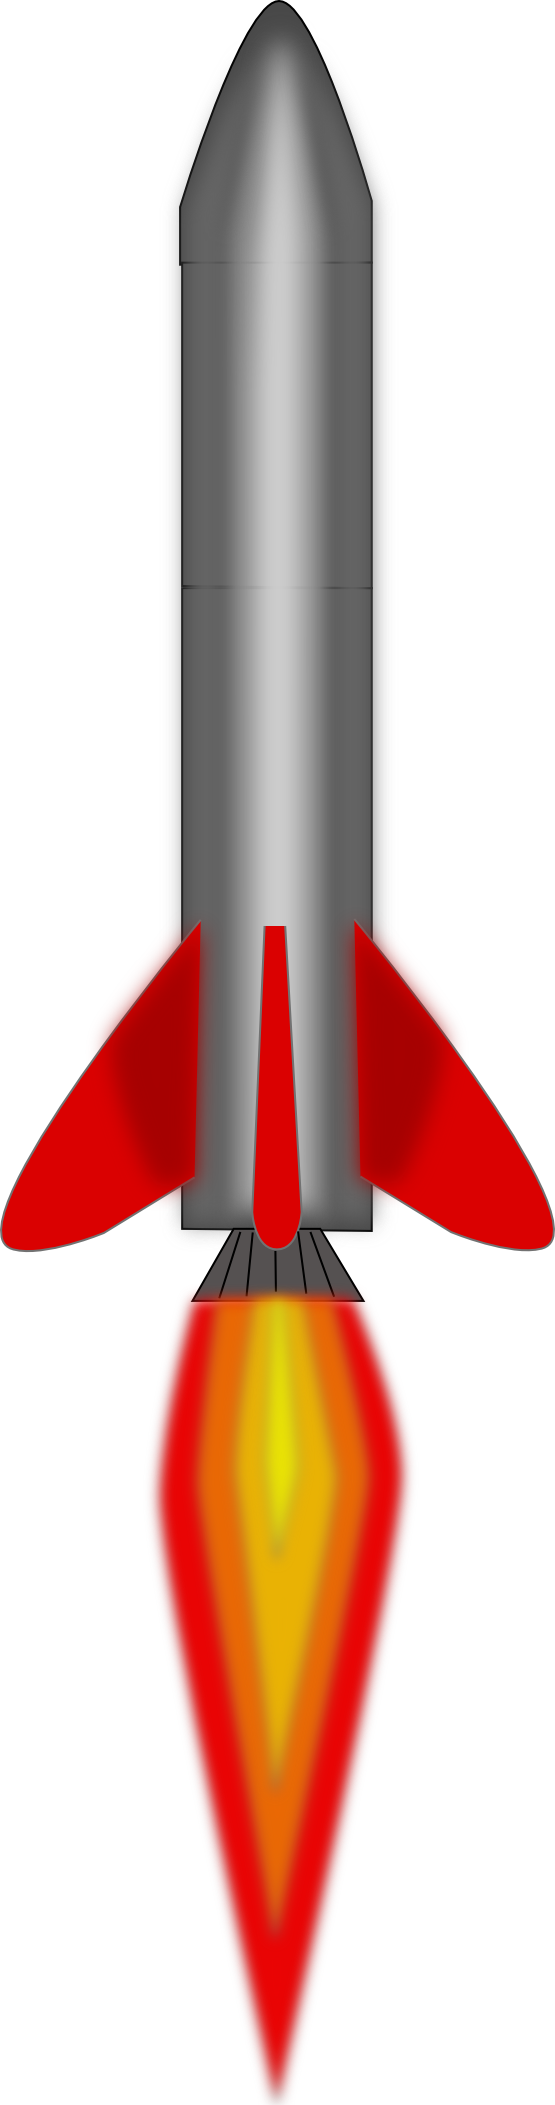 This Free Missile Clip Art Is Brought To You Courtesy Of Our Friends